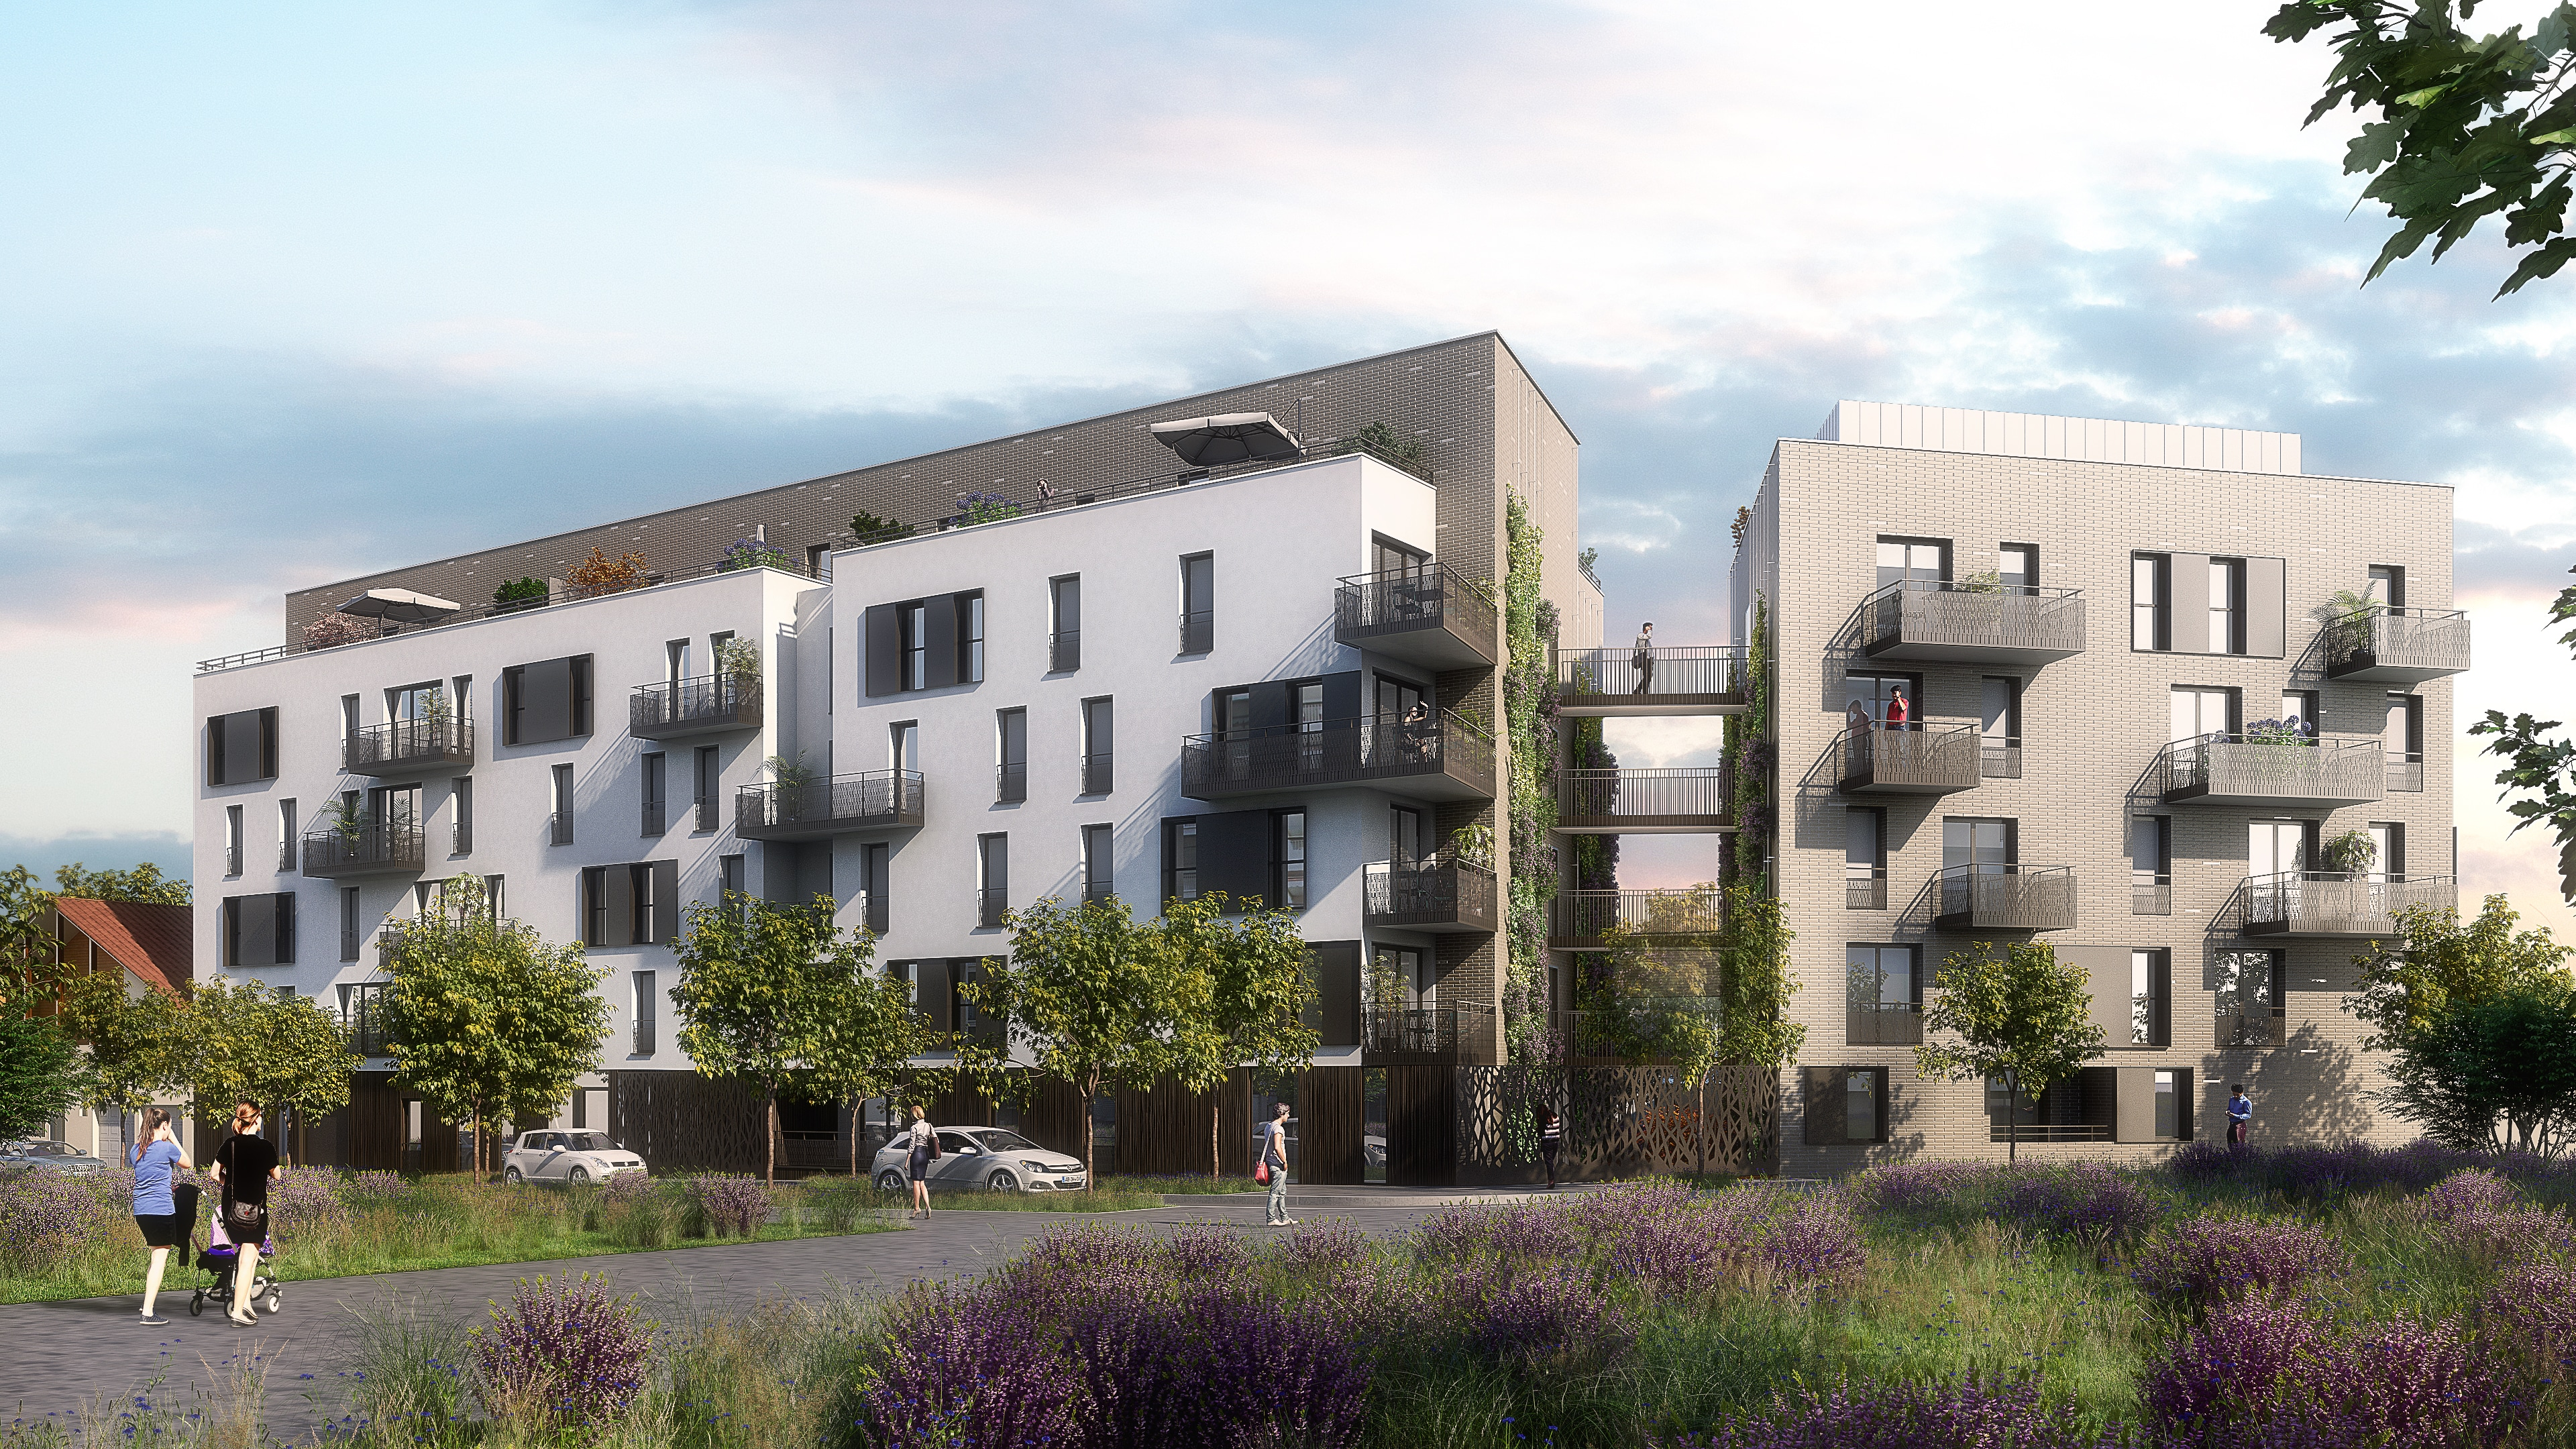 Programme immobilier neuf BAGNEUX Bagneux | Photo 1/4